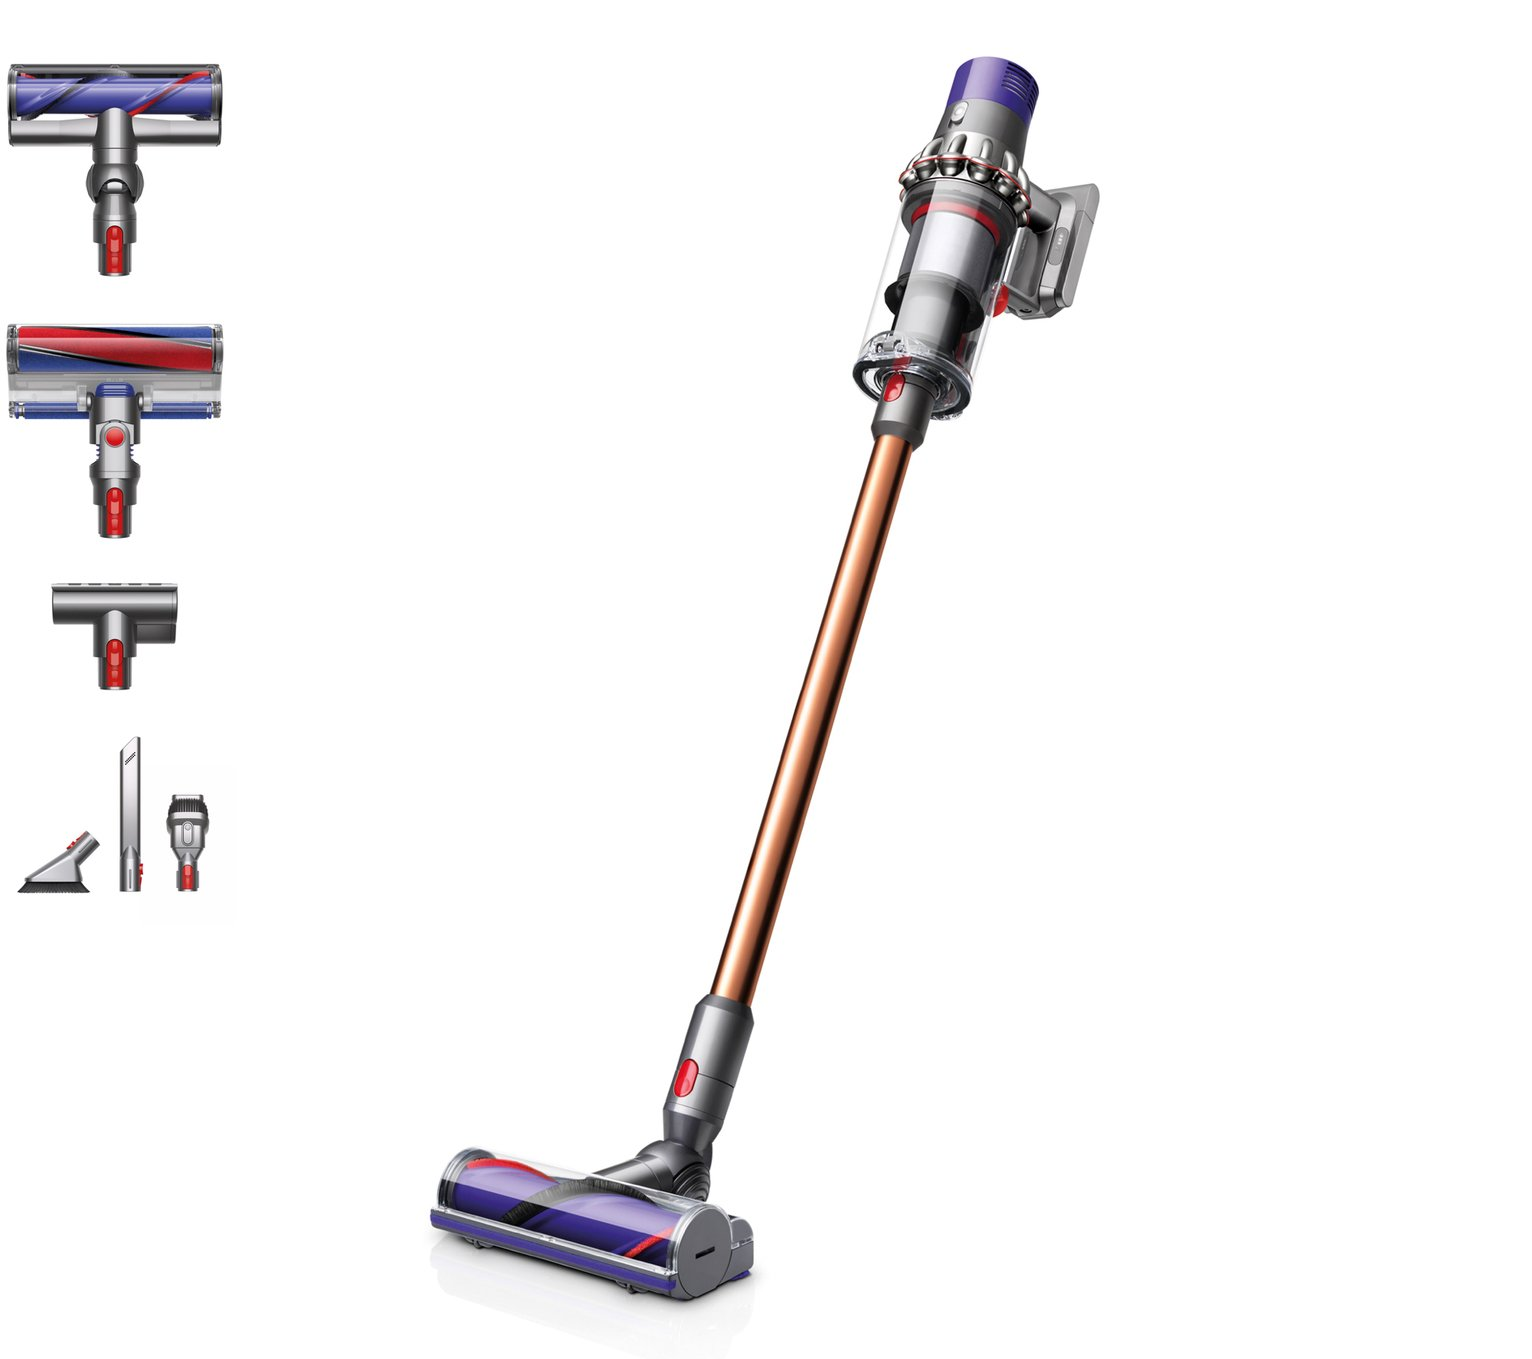 Compare Prices For Dyson V7 Motorhead Vacuum Cleaner